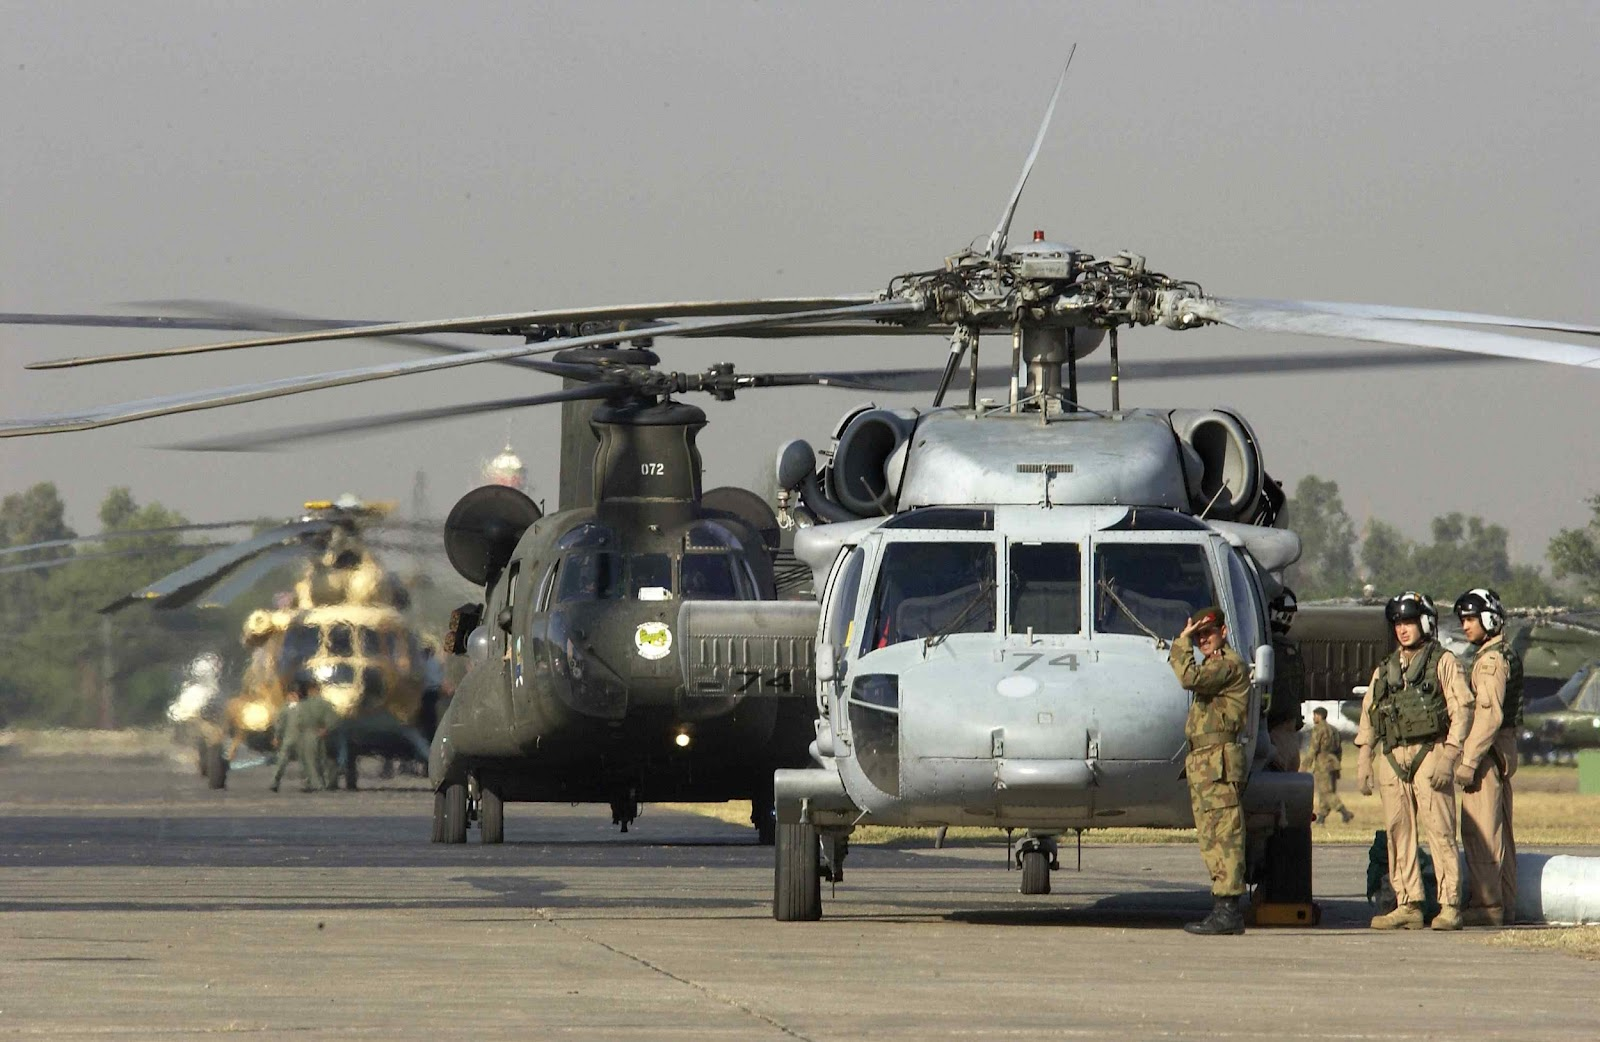 mi helicopter with Pakistan Army Wallpapers on Watch also Open photo moreover 549822 likewise Showthread as well Big.